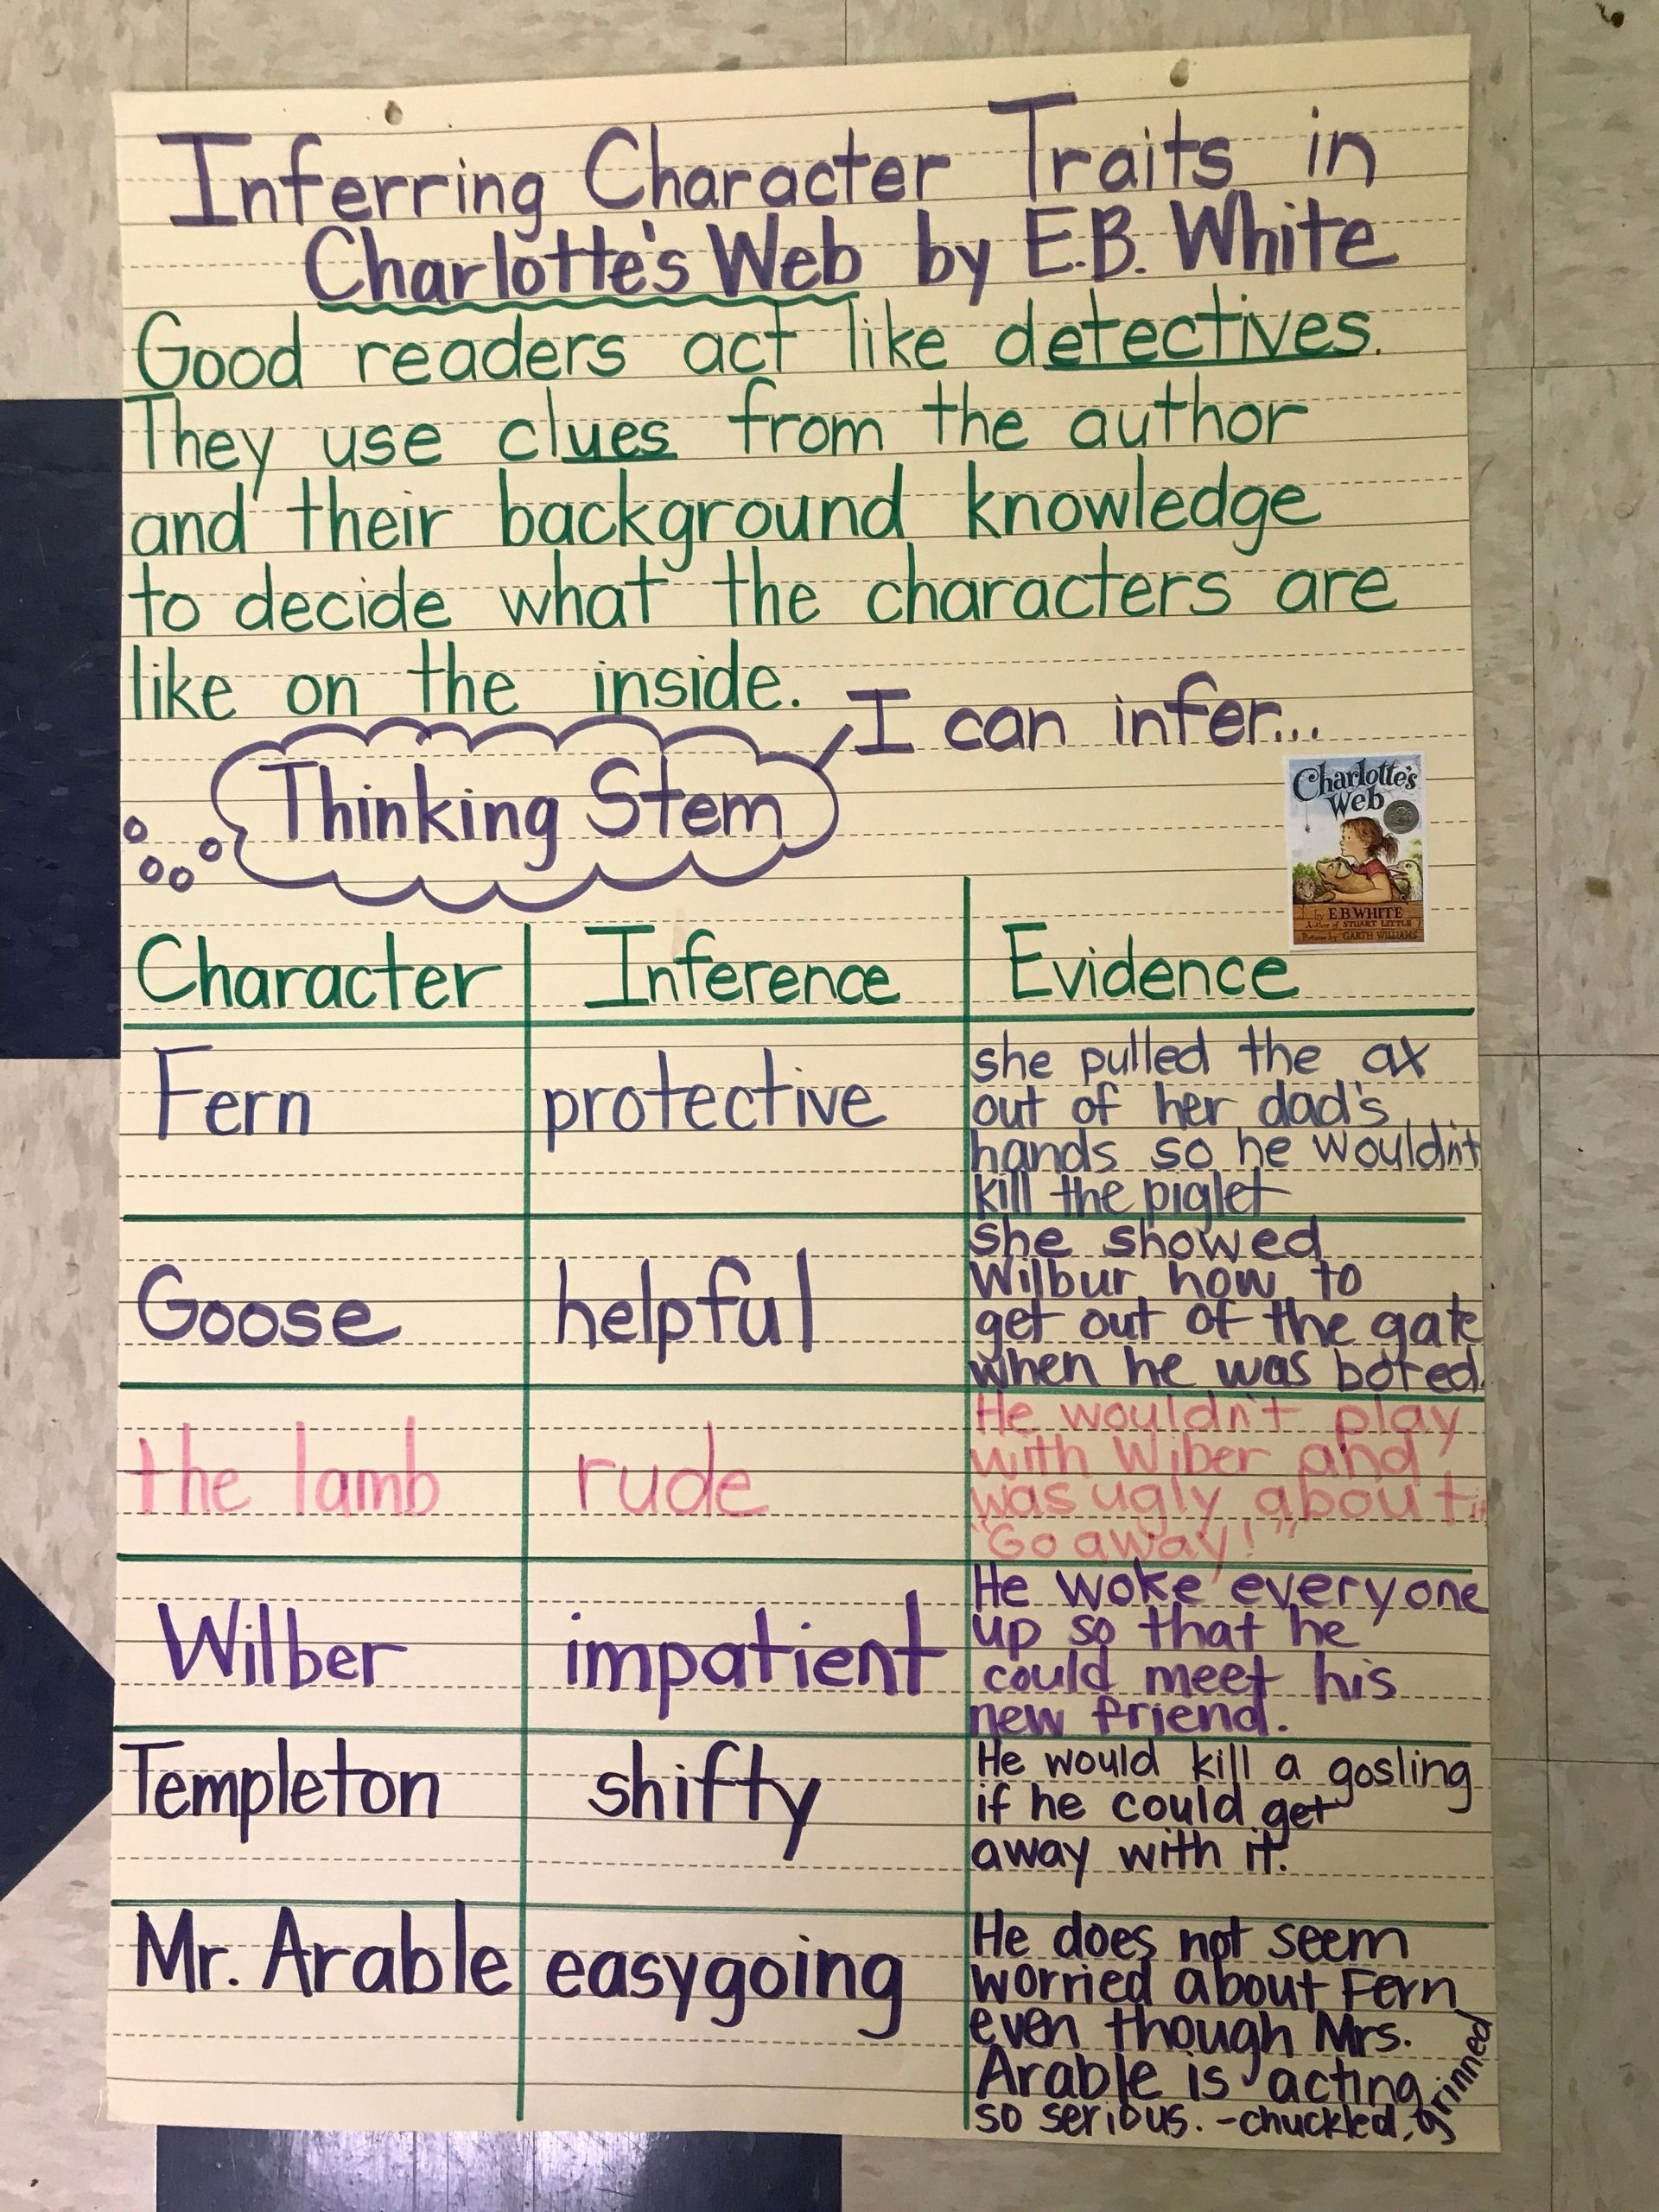 Charlotte Web Character Traits Worksheets Inspirational Pin On Making Inferences